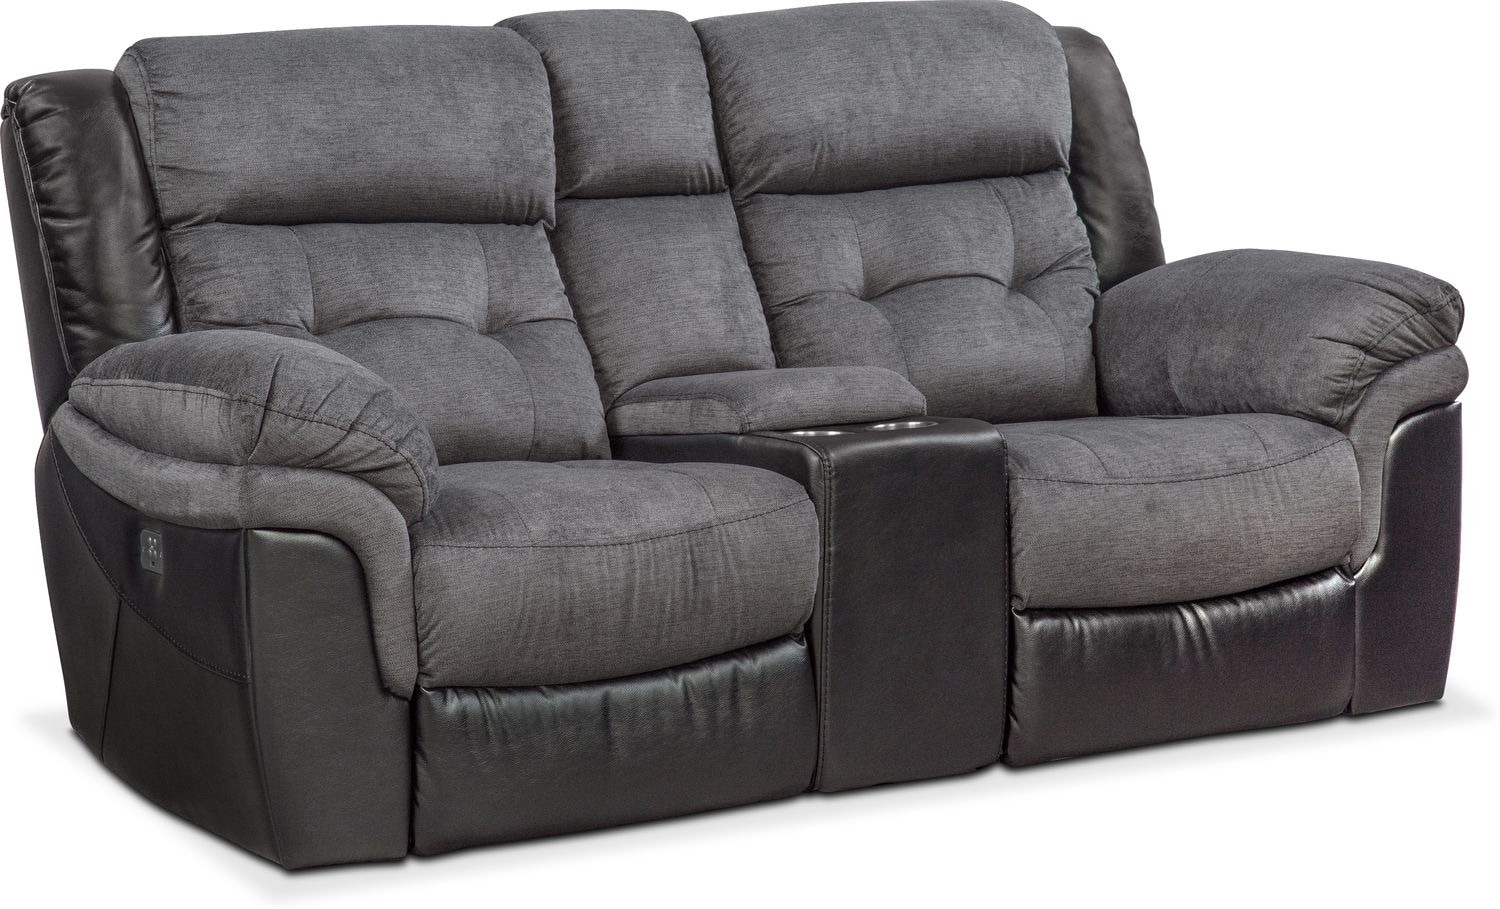 ... Power Reclining Loveseat with Console - Black. Hover to zoom  sc 1 st  Value City Furniture : power reclining loveseats with console - islam-shia.org